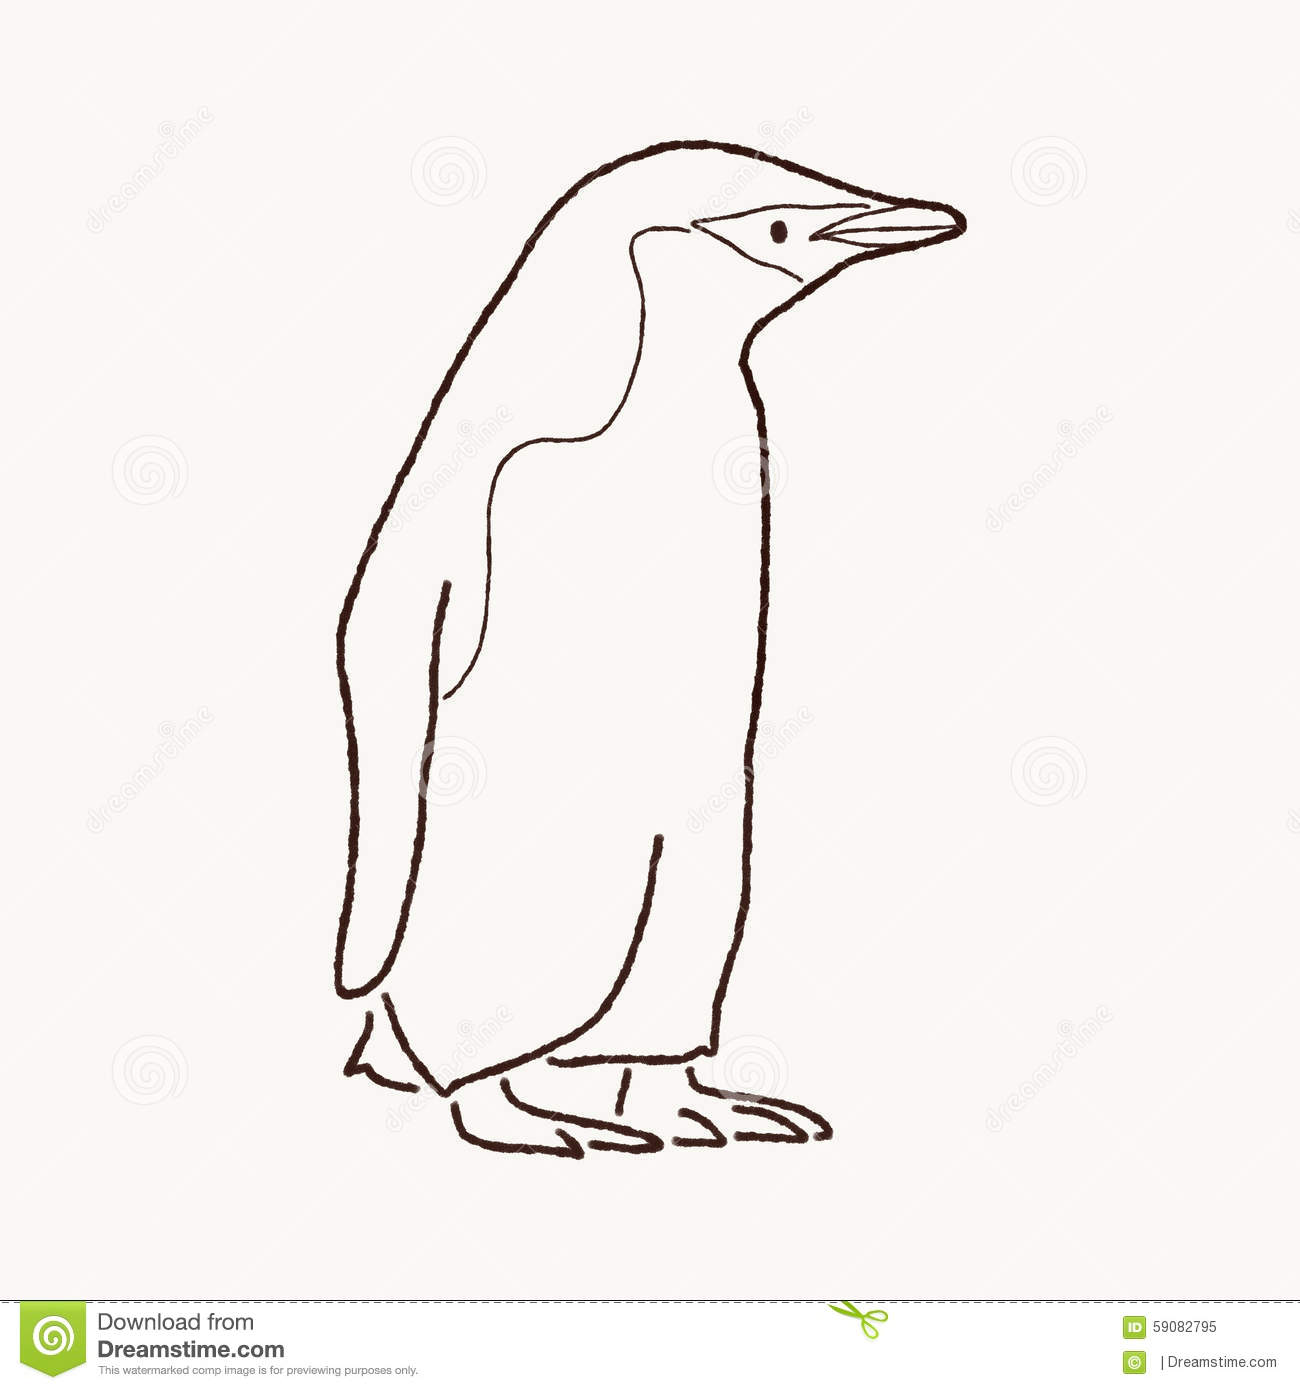 Chinstrap penguin clipart.